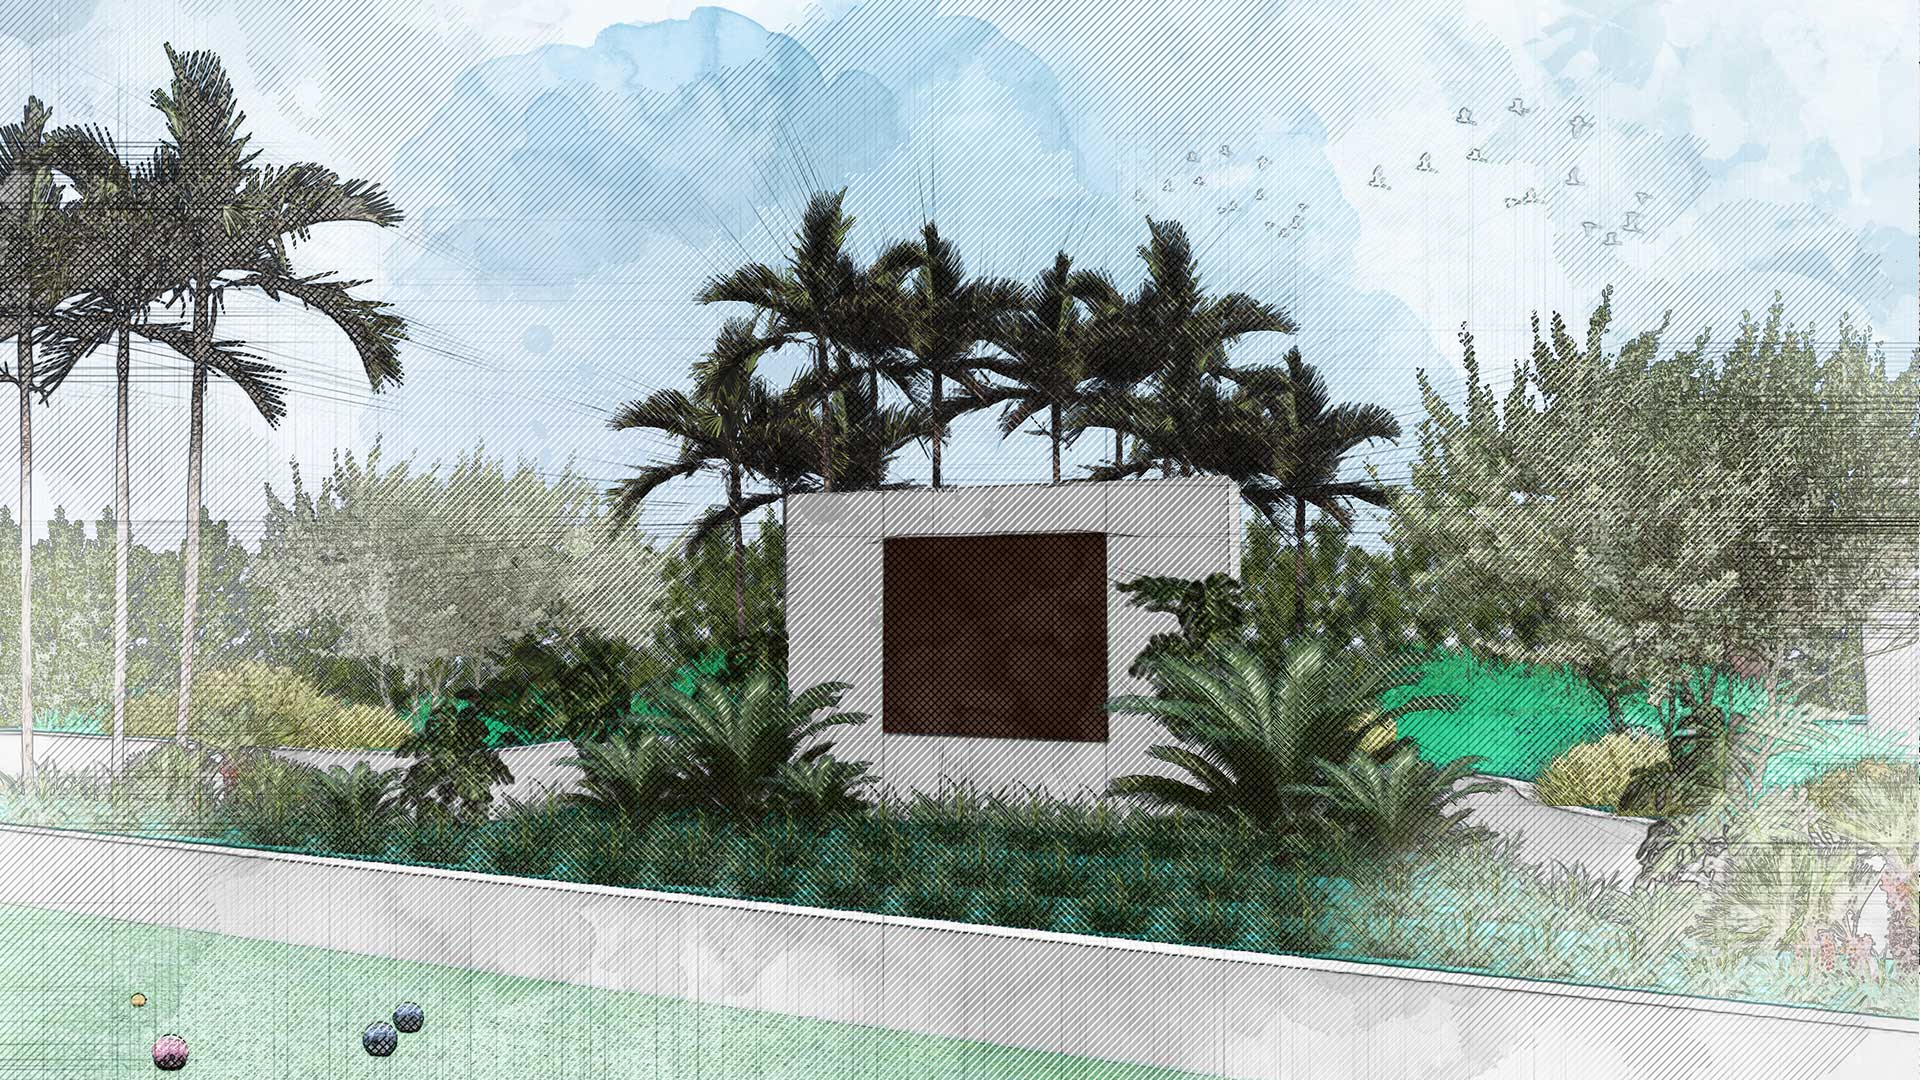 Sketching of landscape design of 7140 Collins Garden showing landscape